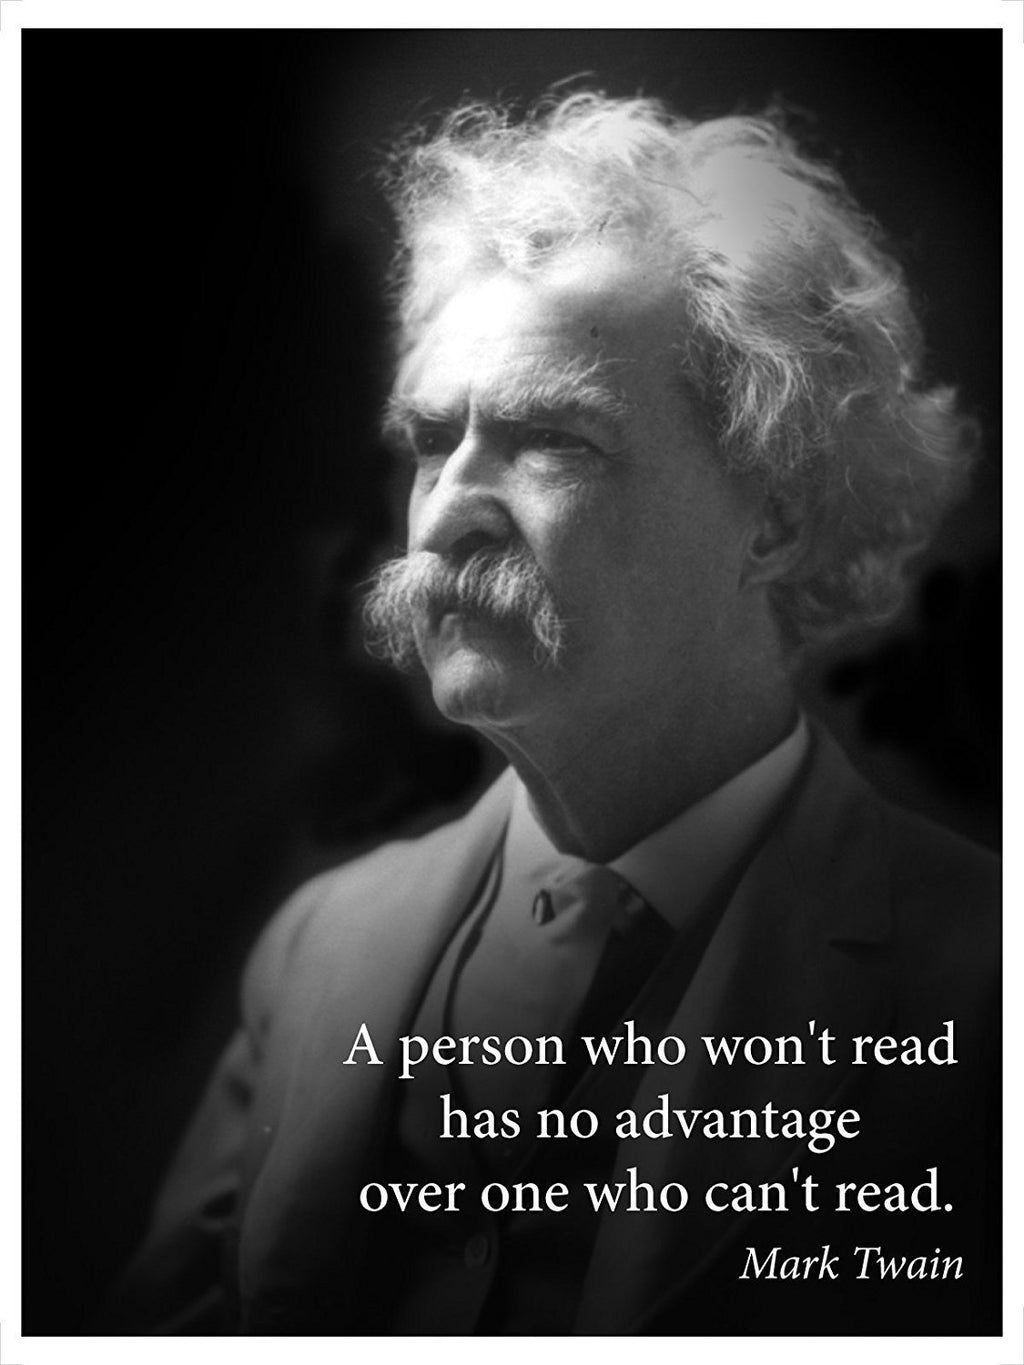 A Person Who Won't Read Quote By Mark Twain Portrait Poster - Young N' Refined